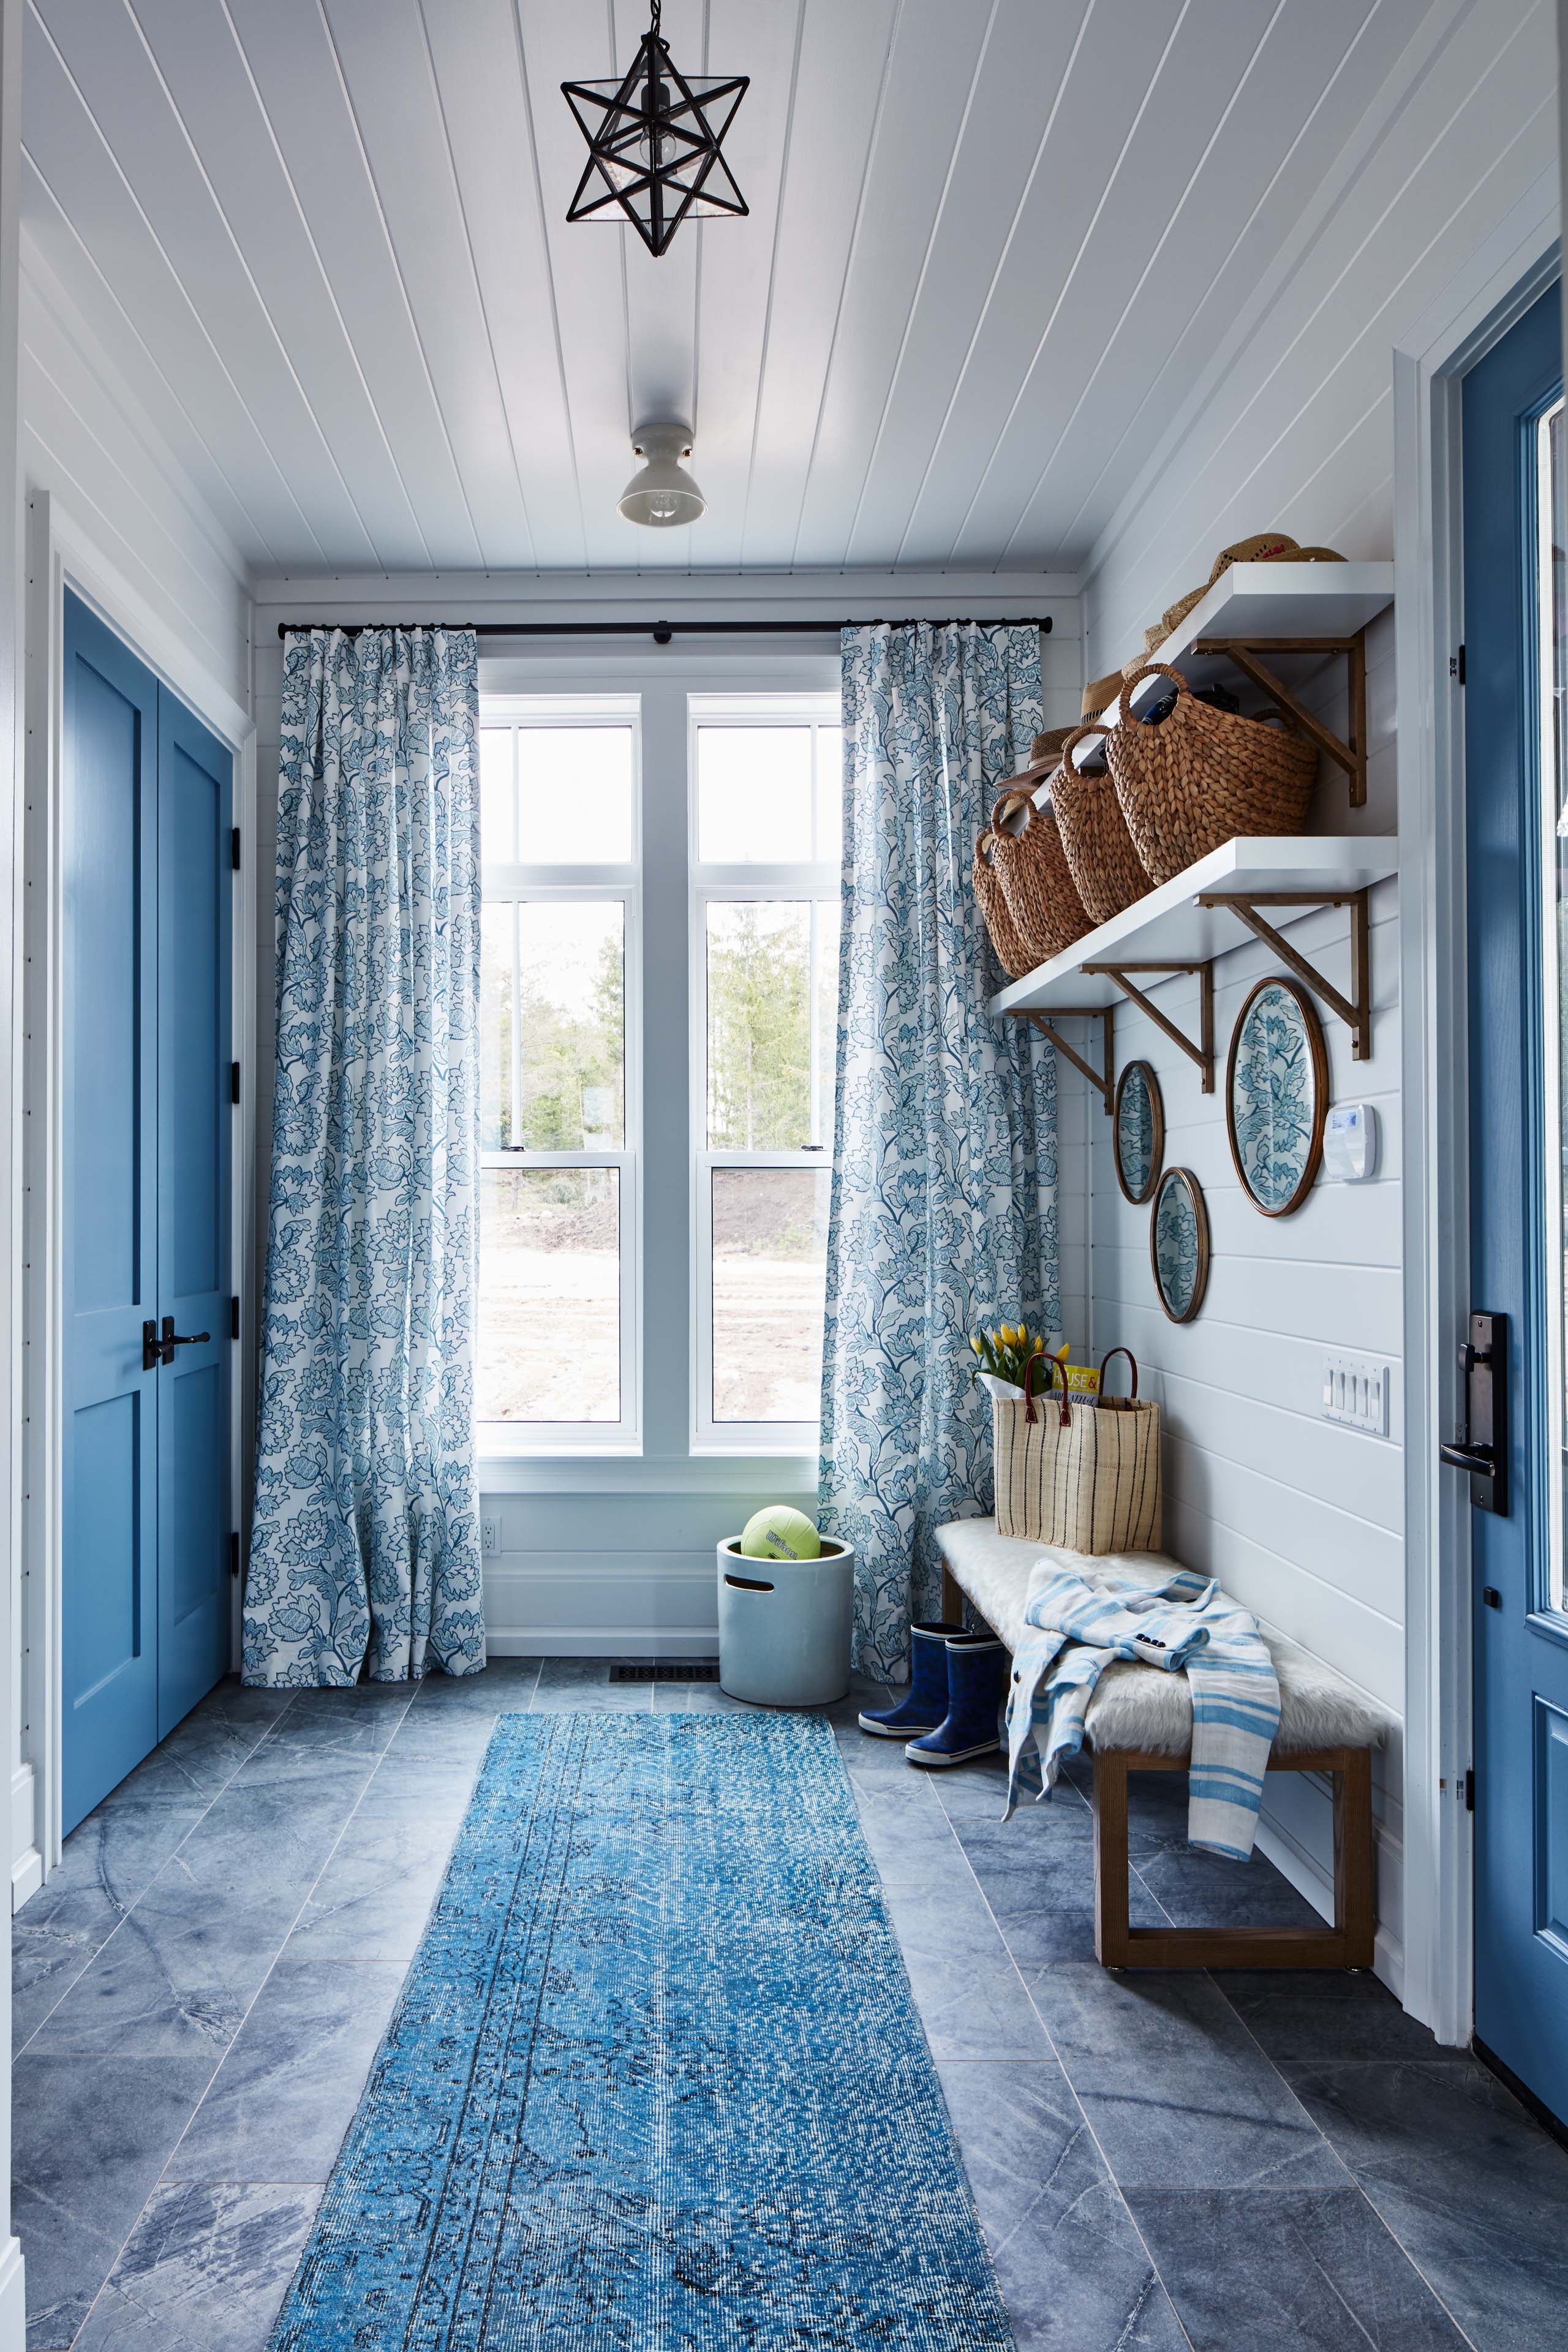 Soft blues distinguish this mud room with its elongated bench and easily washed tiles. #mudroom #blueandwhite #beadboardceiling #SarahRichardson